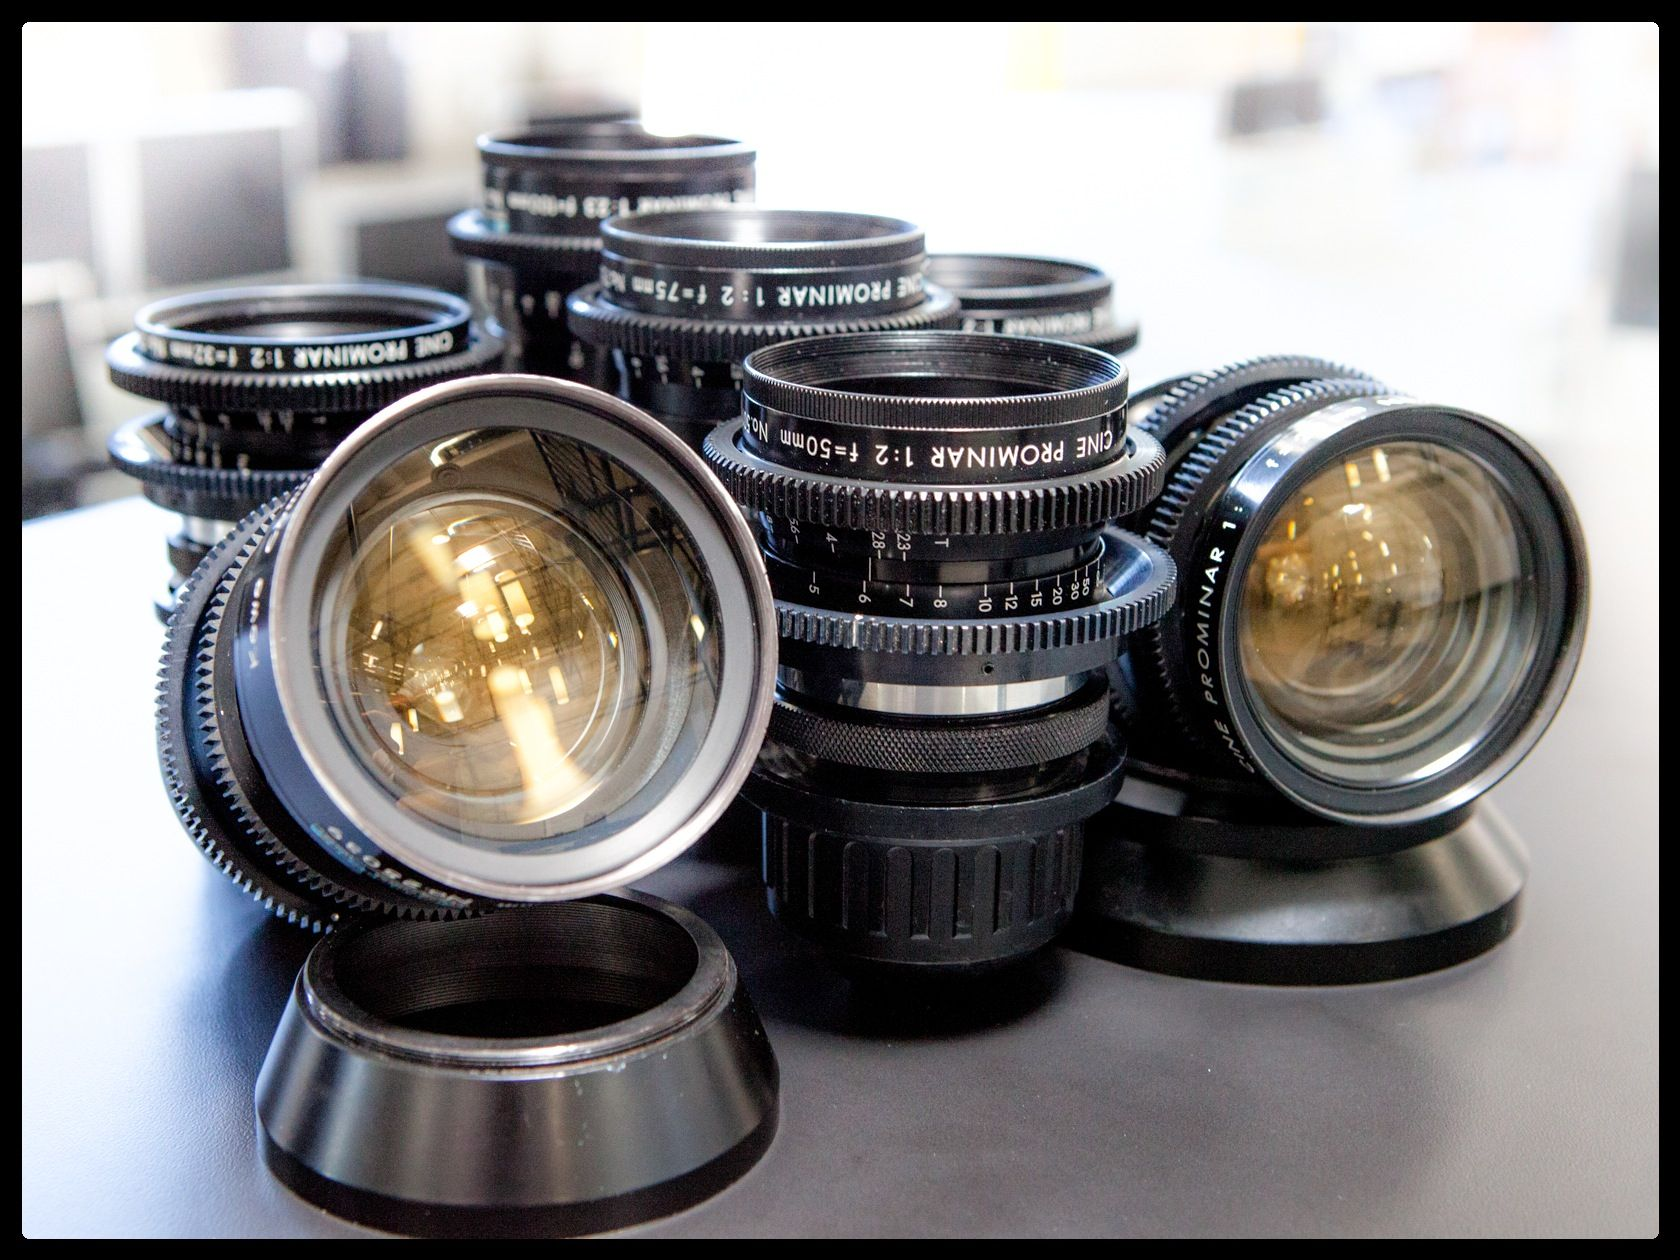 Get That Vintage Look You Re Seeking With Our Kowa Cine Prominar Spherical Primes Completely Overhauled And Ready To Work In Vintage Lenses Lenses Lens Flare